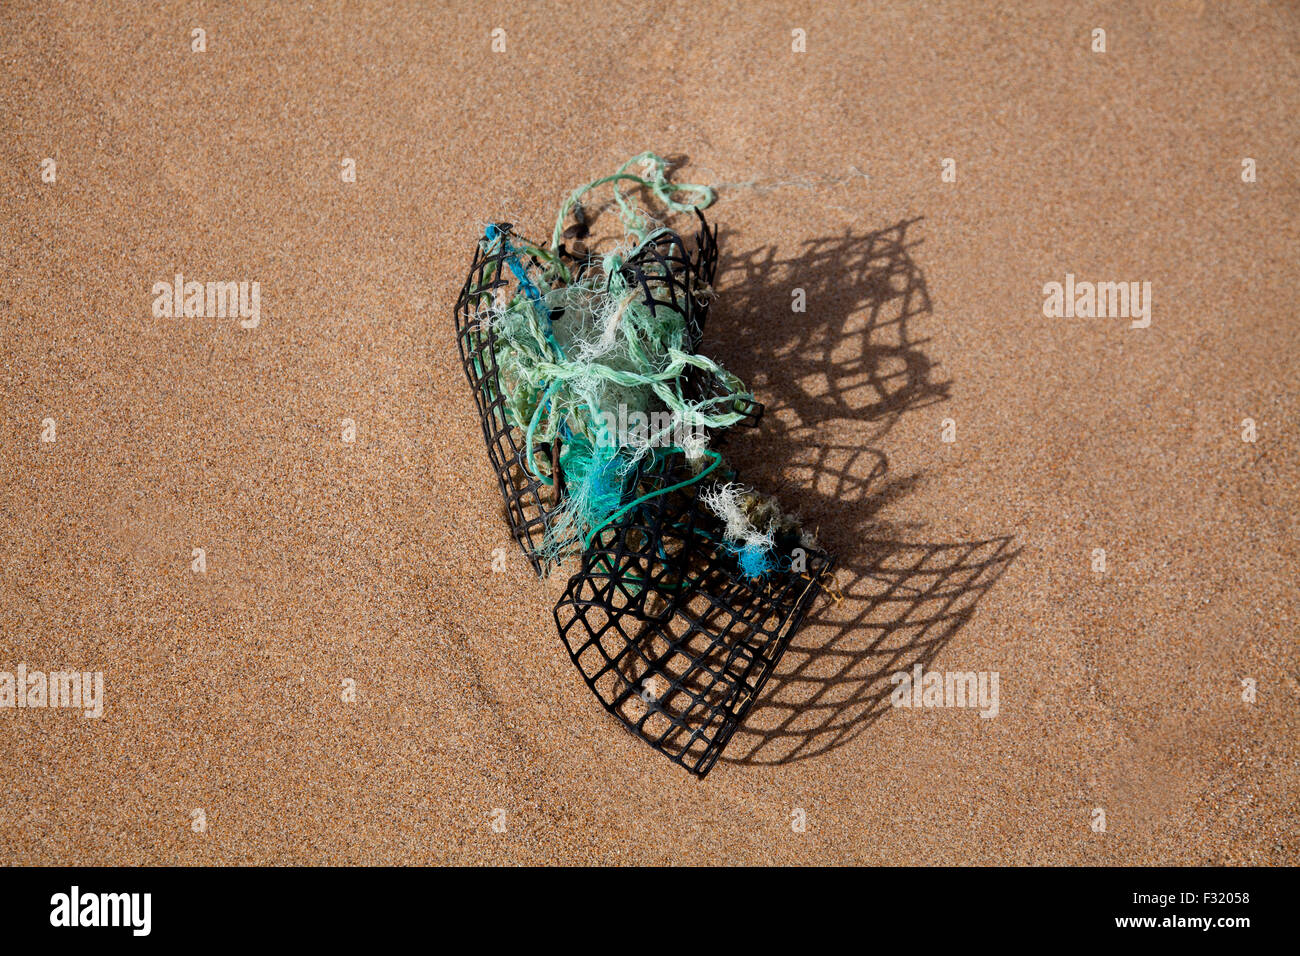 Plastic debris on a beach. - Stock Image